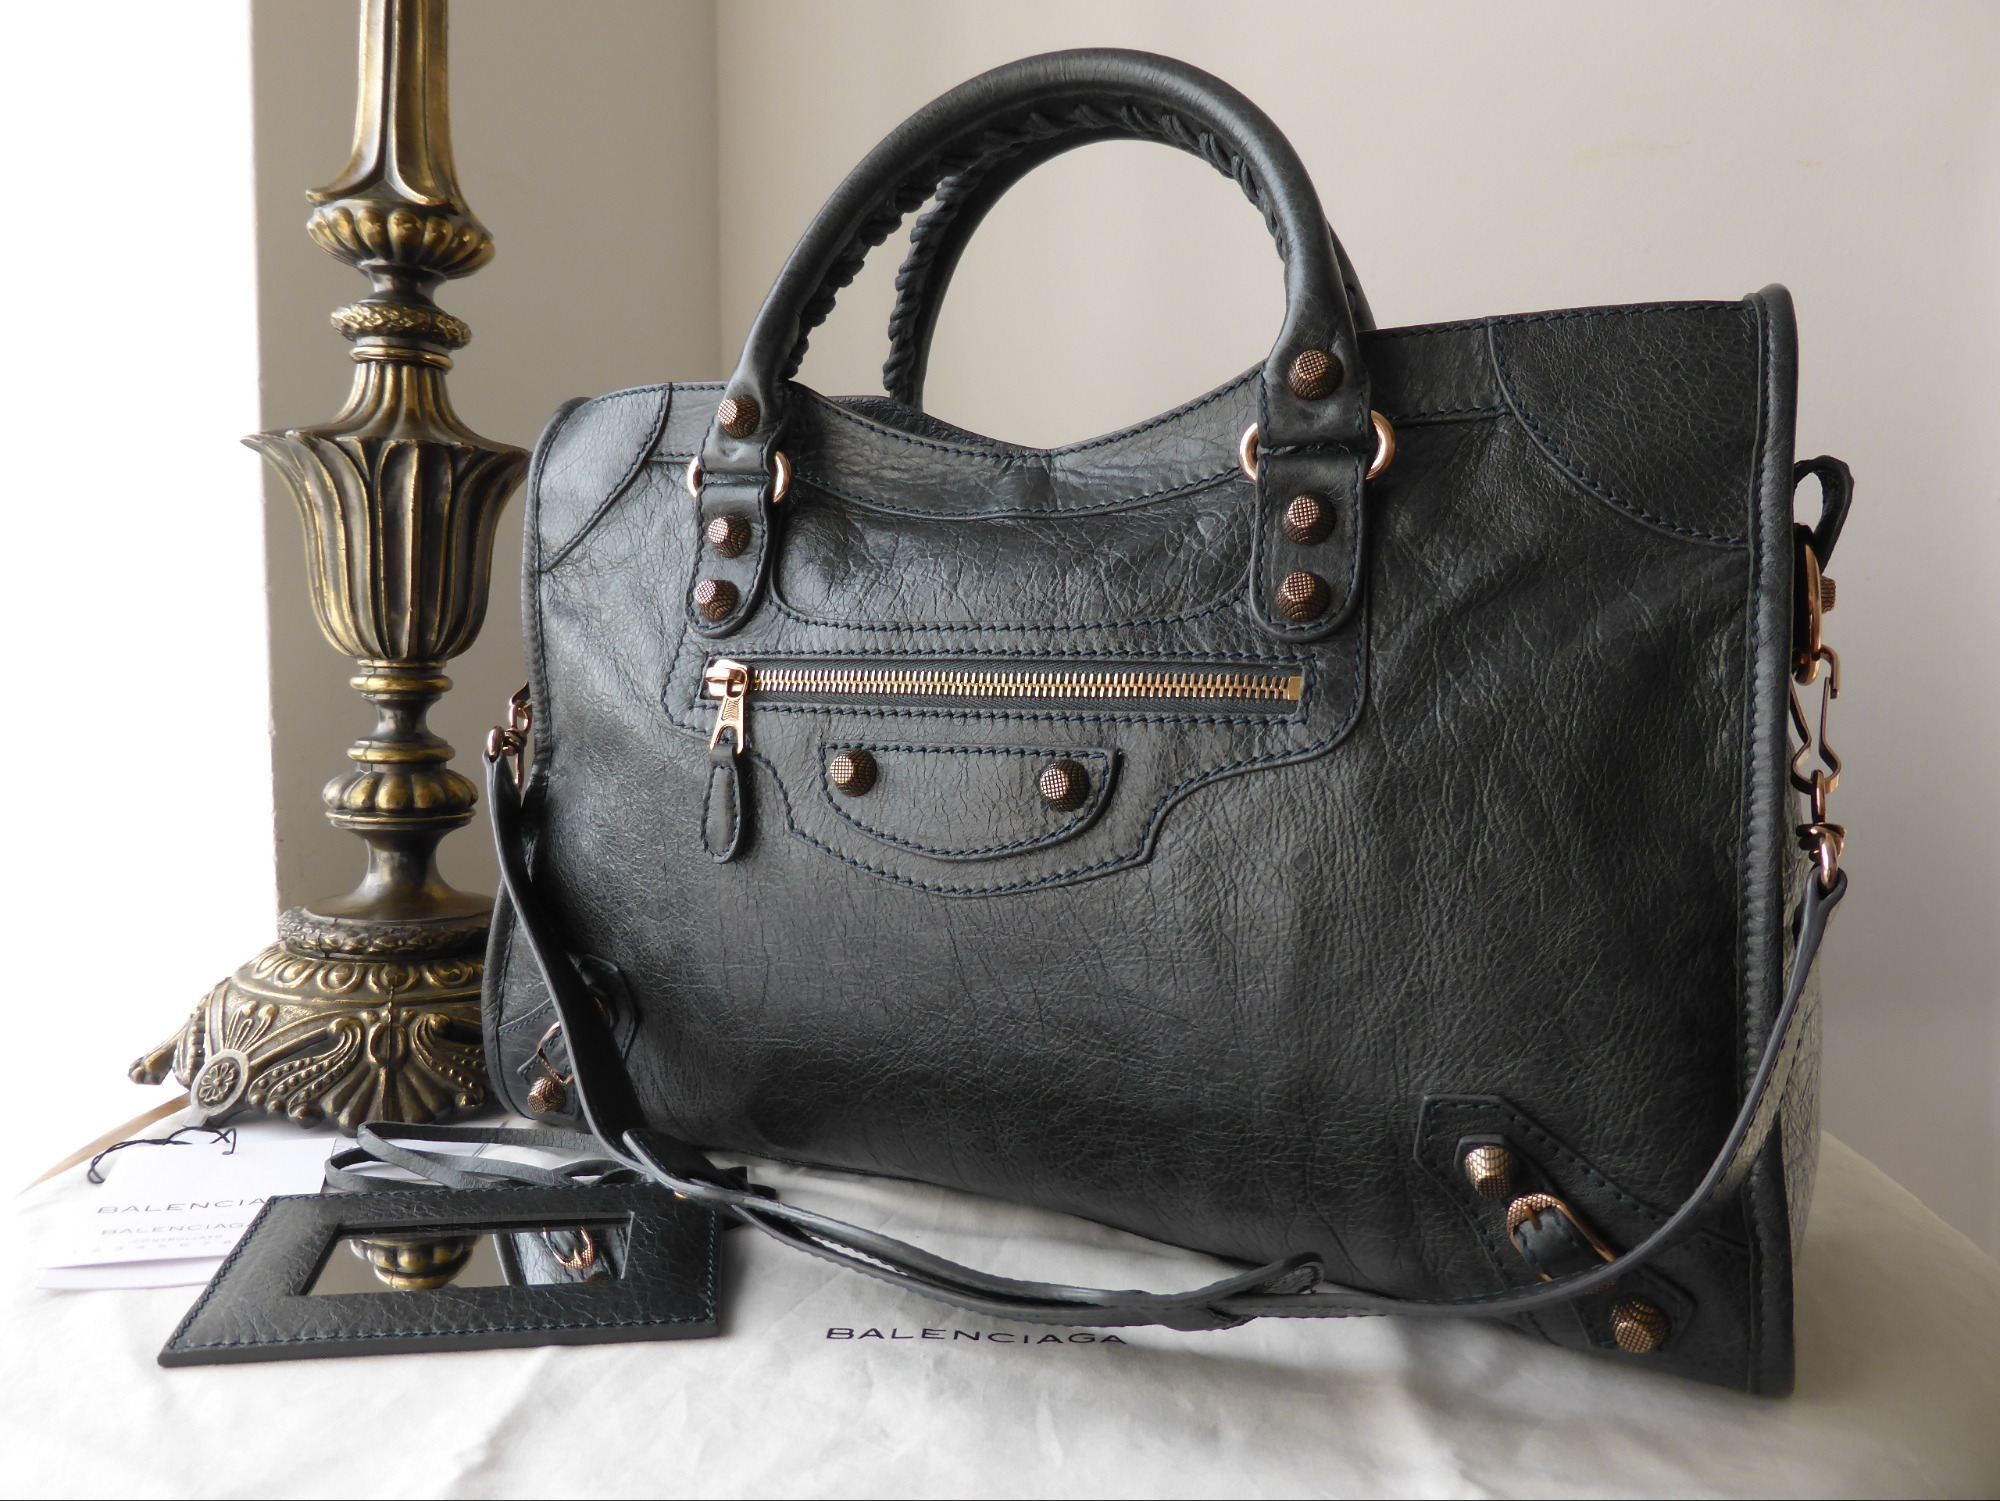 55a322232e9 Balenciaga City in Anthracite Lambskin with Giant 12 Rose Gold Hardware .  http://